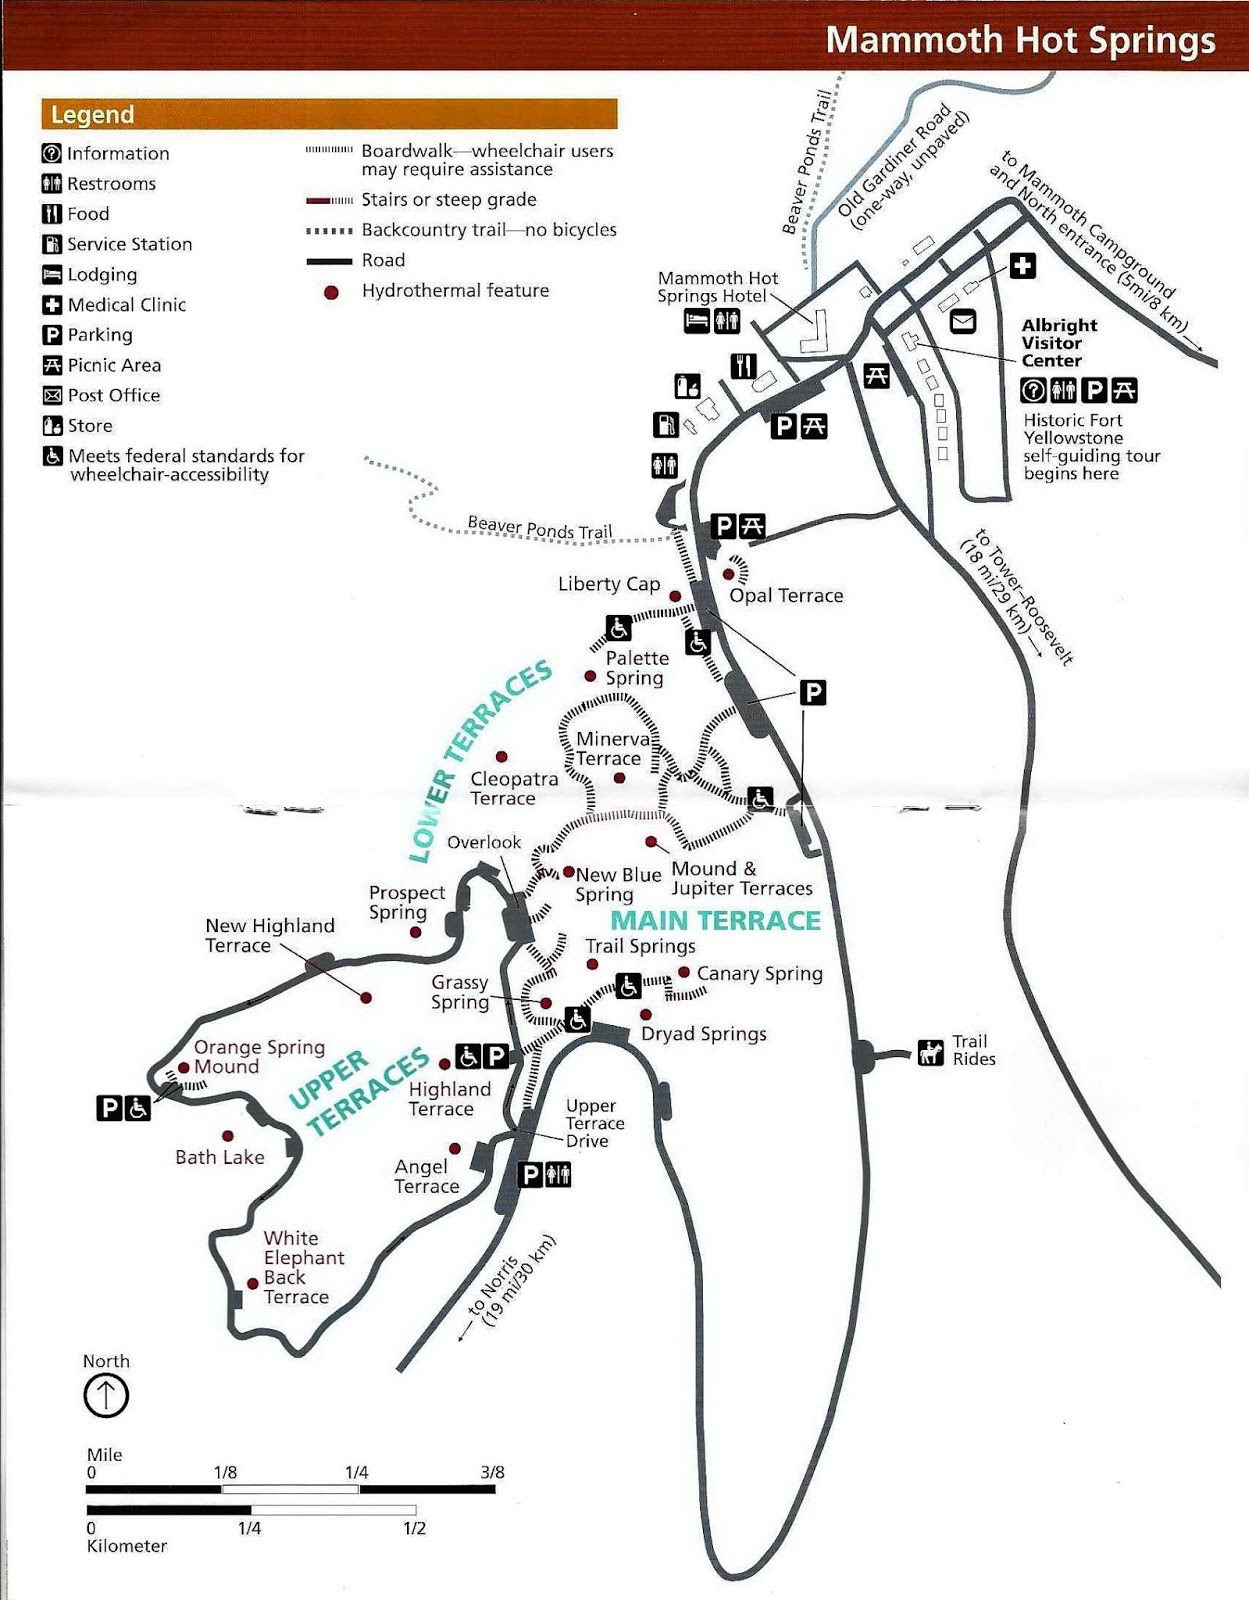 mammoth hot springs trail guide map